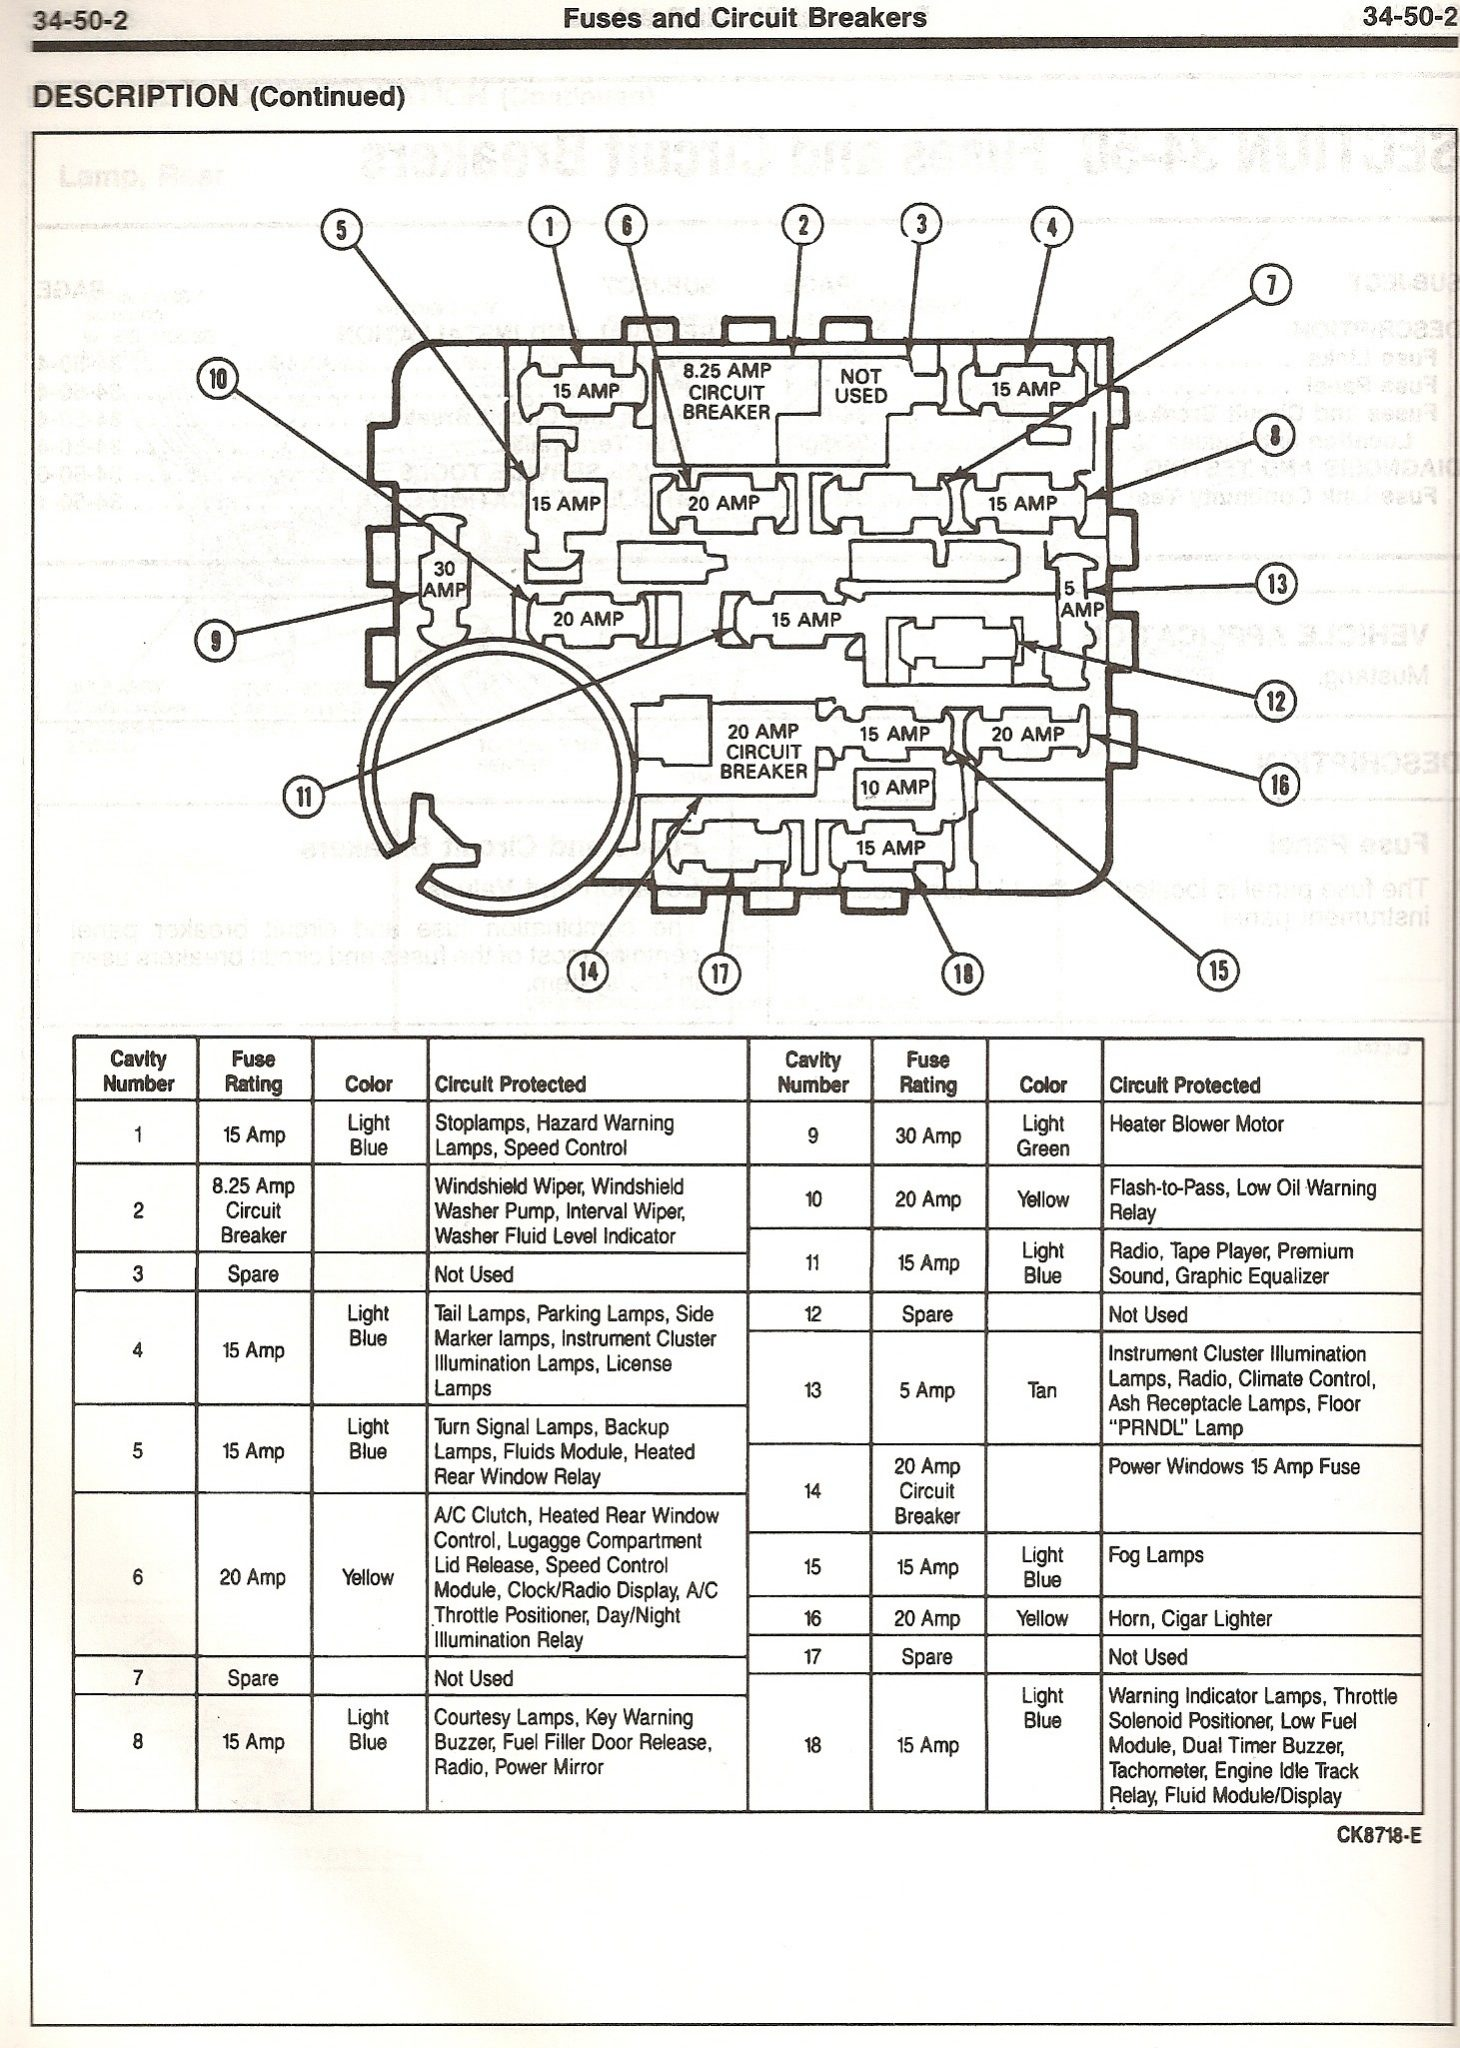 93 F 150 Fuse Box Enthusiast Wiring Diagrams \u2022 93 Ford F150 Fuse Box Diagram  1993 Ford F150 Fuse Box Layout